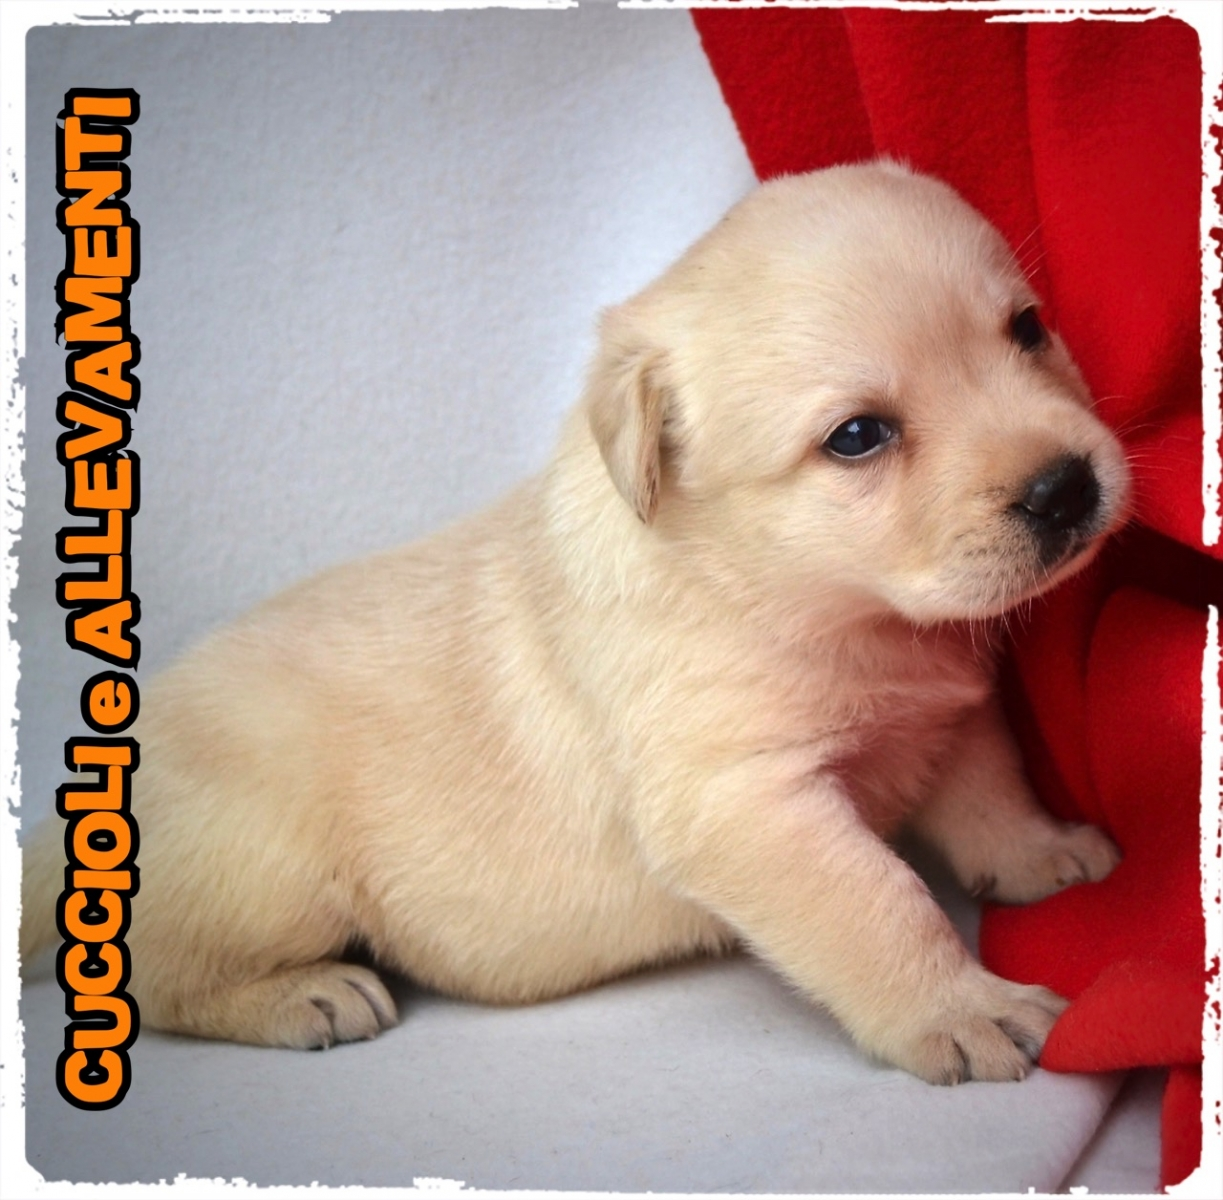 Labrador Retriever 4_wm